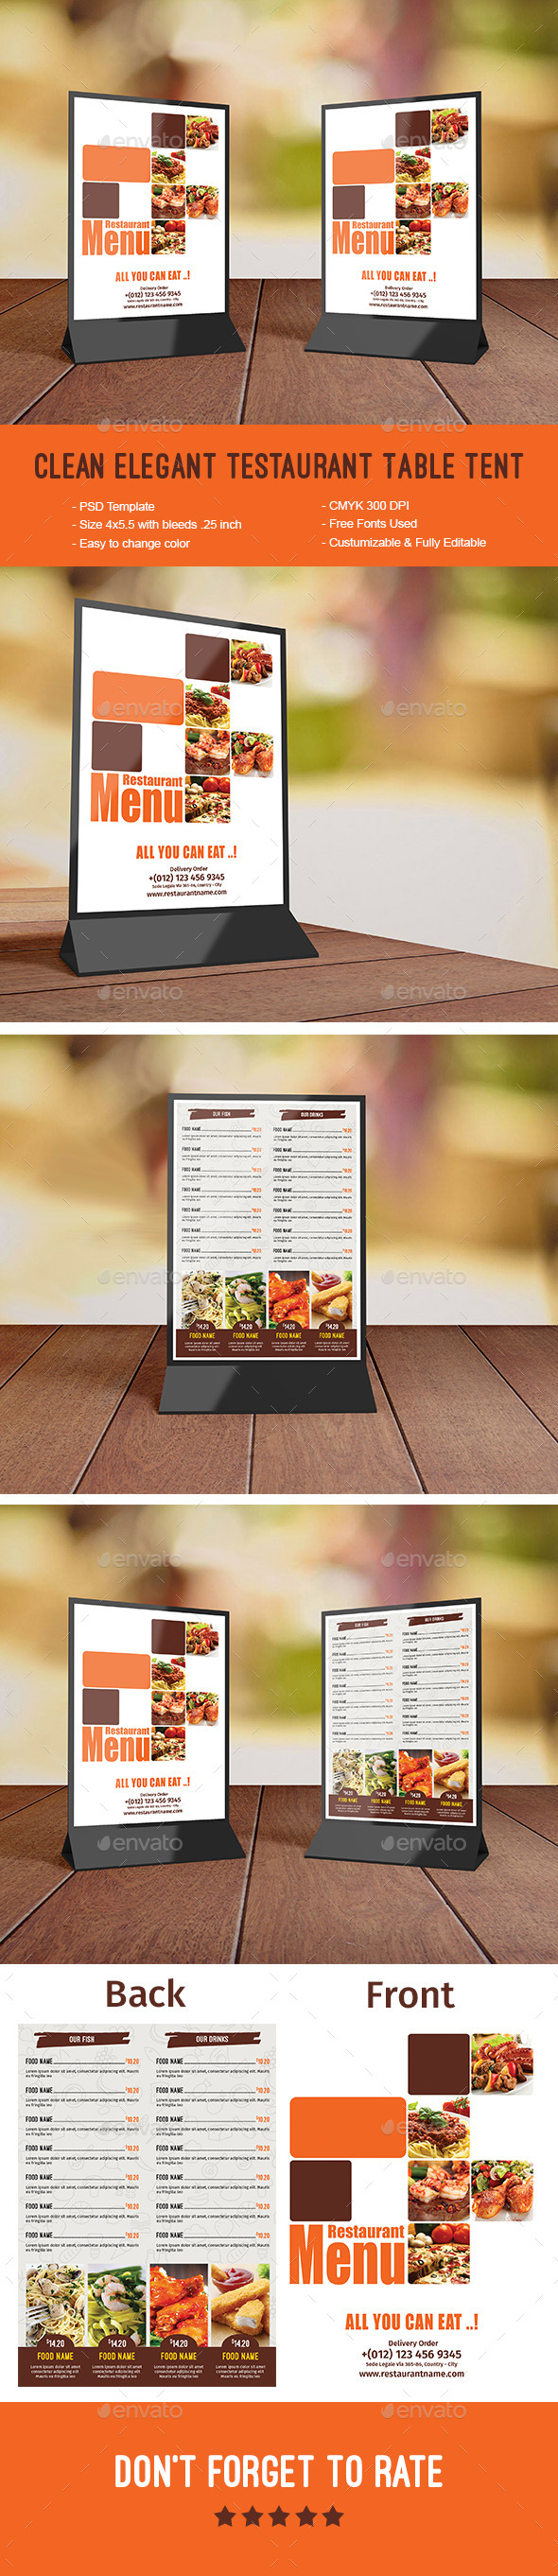 Clean Elegant Restaurant Table Tent - Food Menus Print Templates